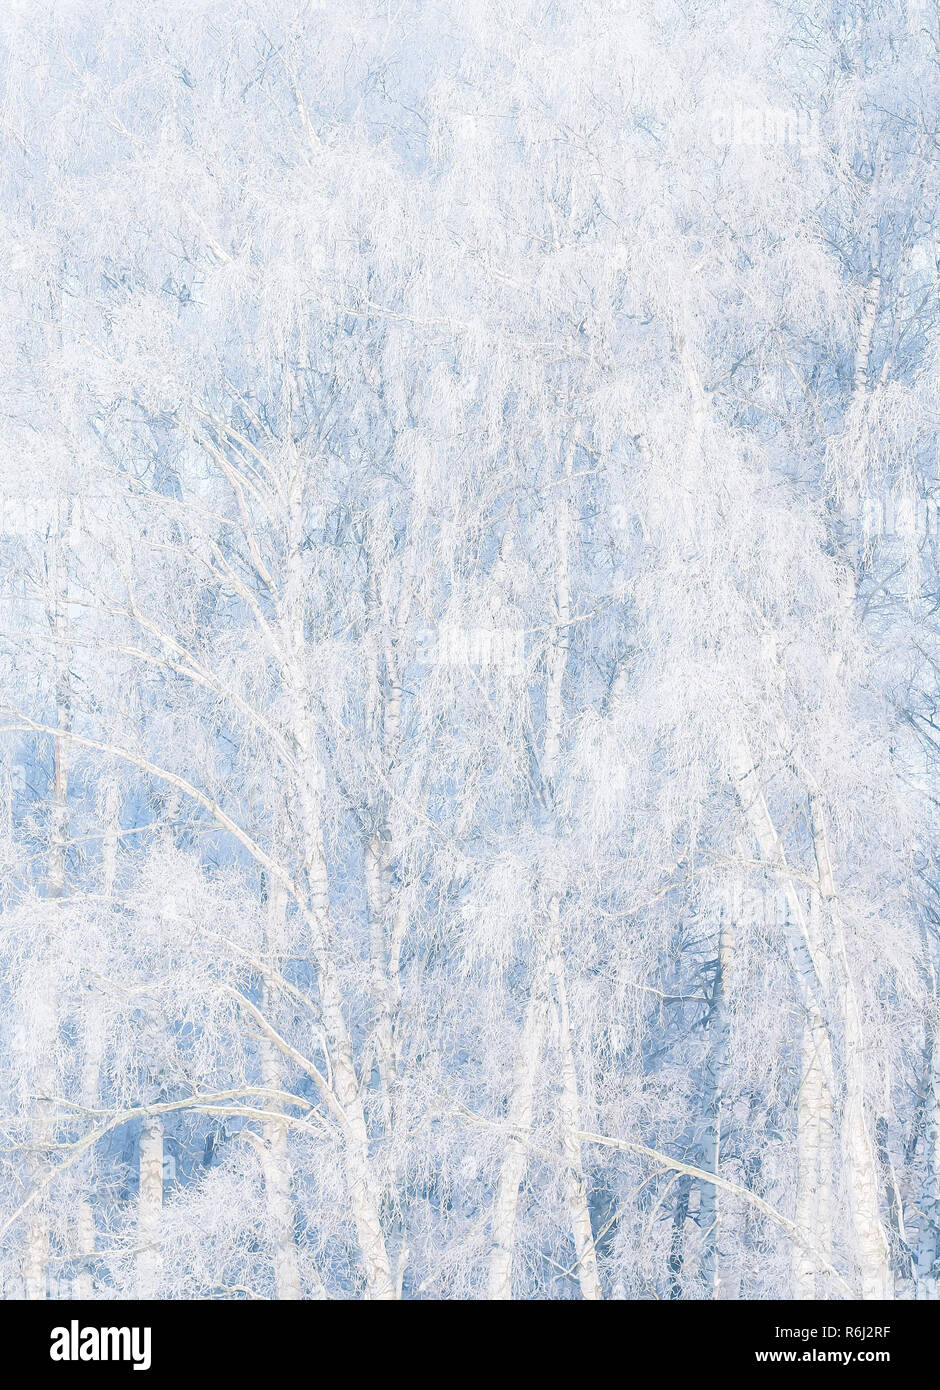 Frost bite on trees - Stock Image